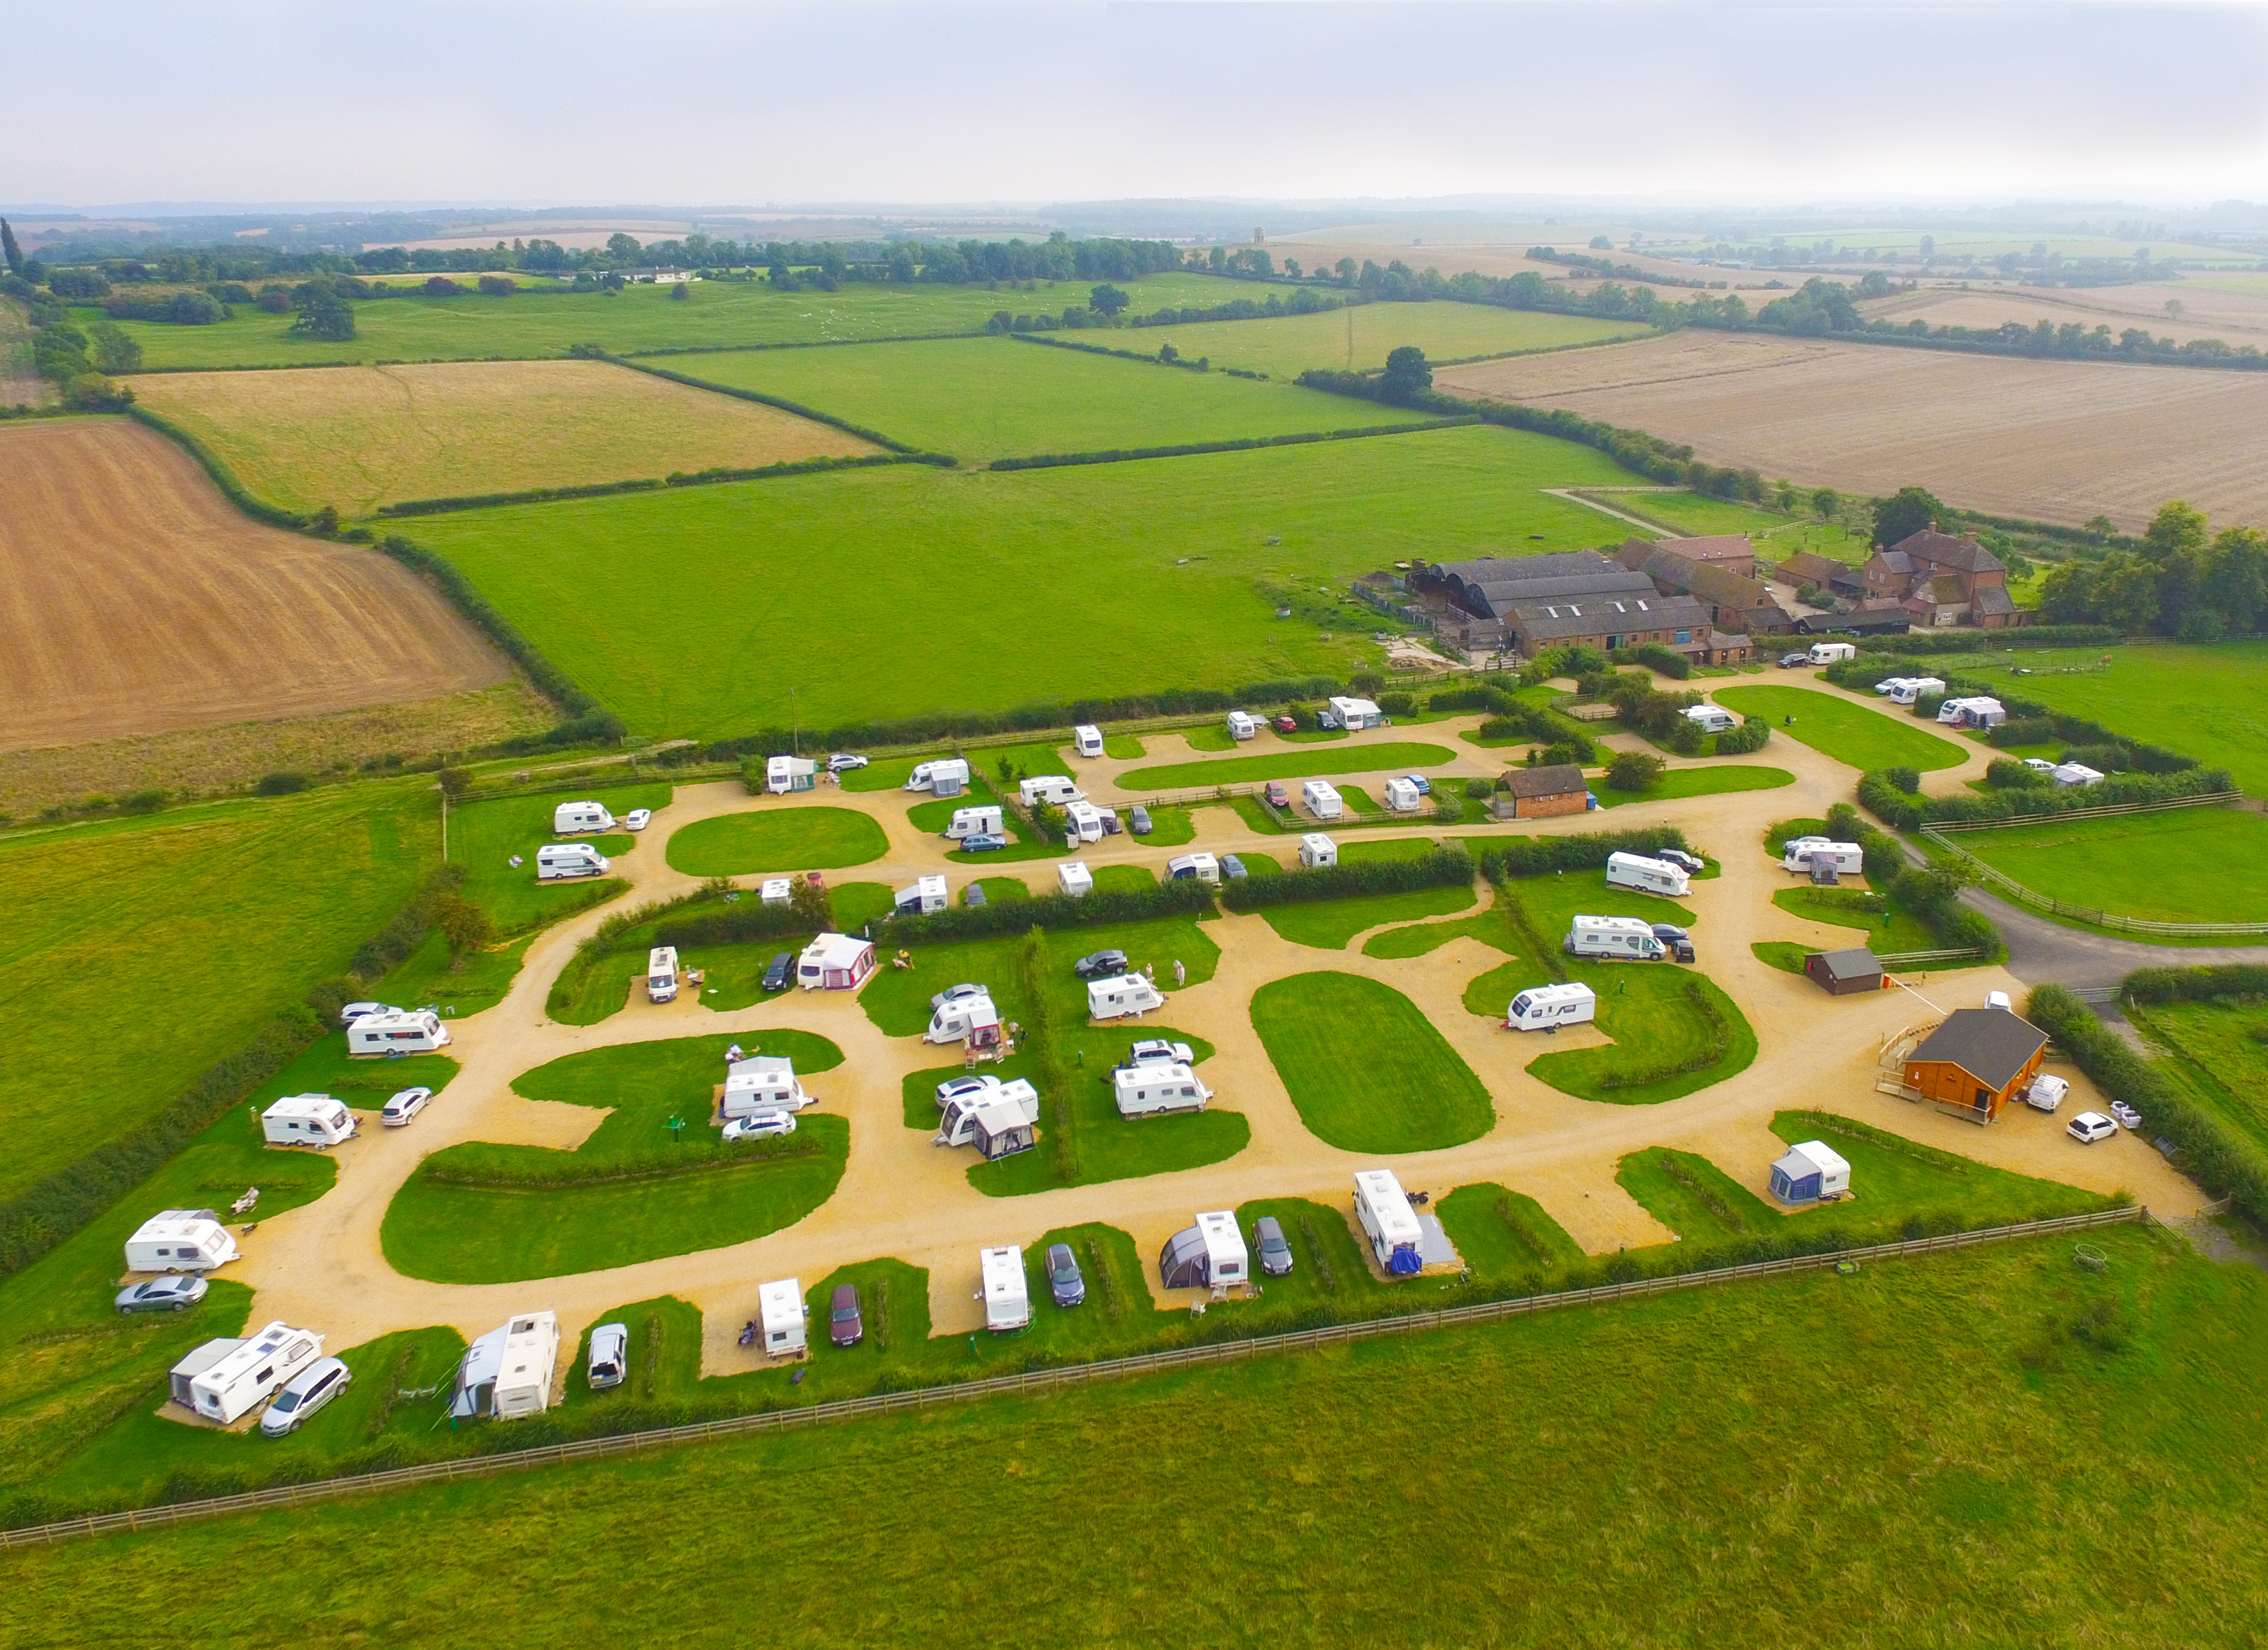 Overhead view of caravan park